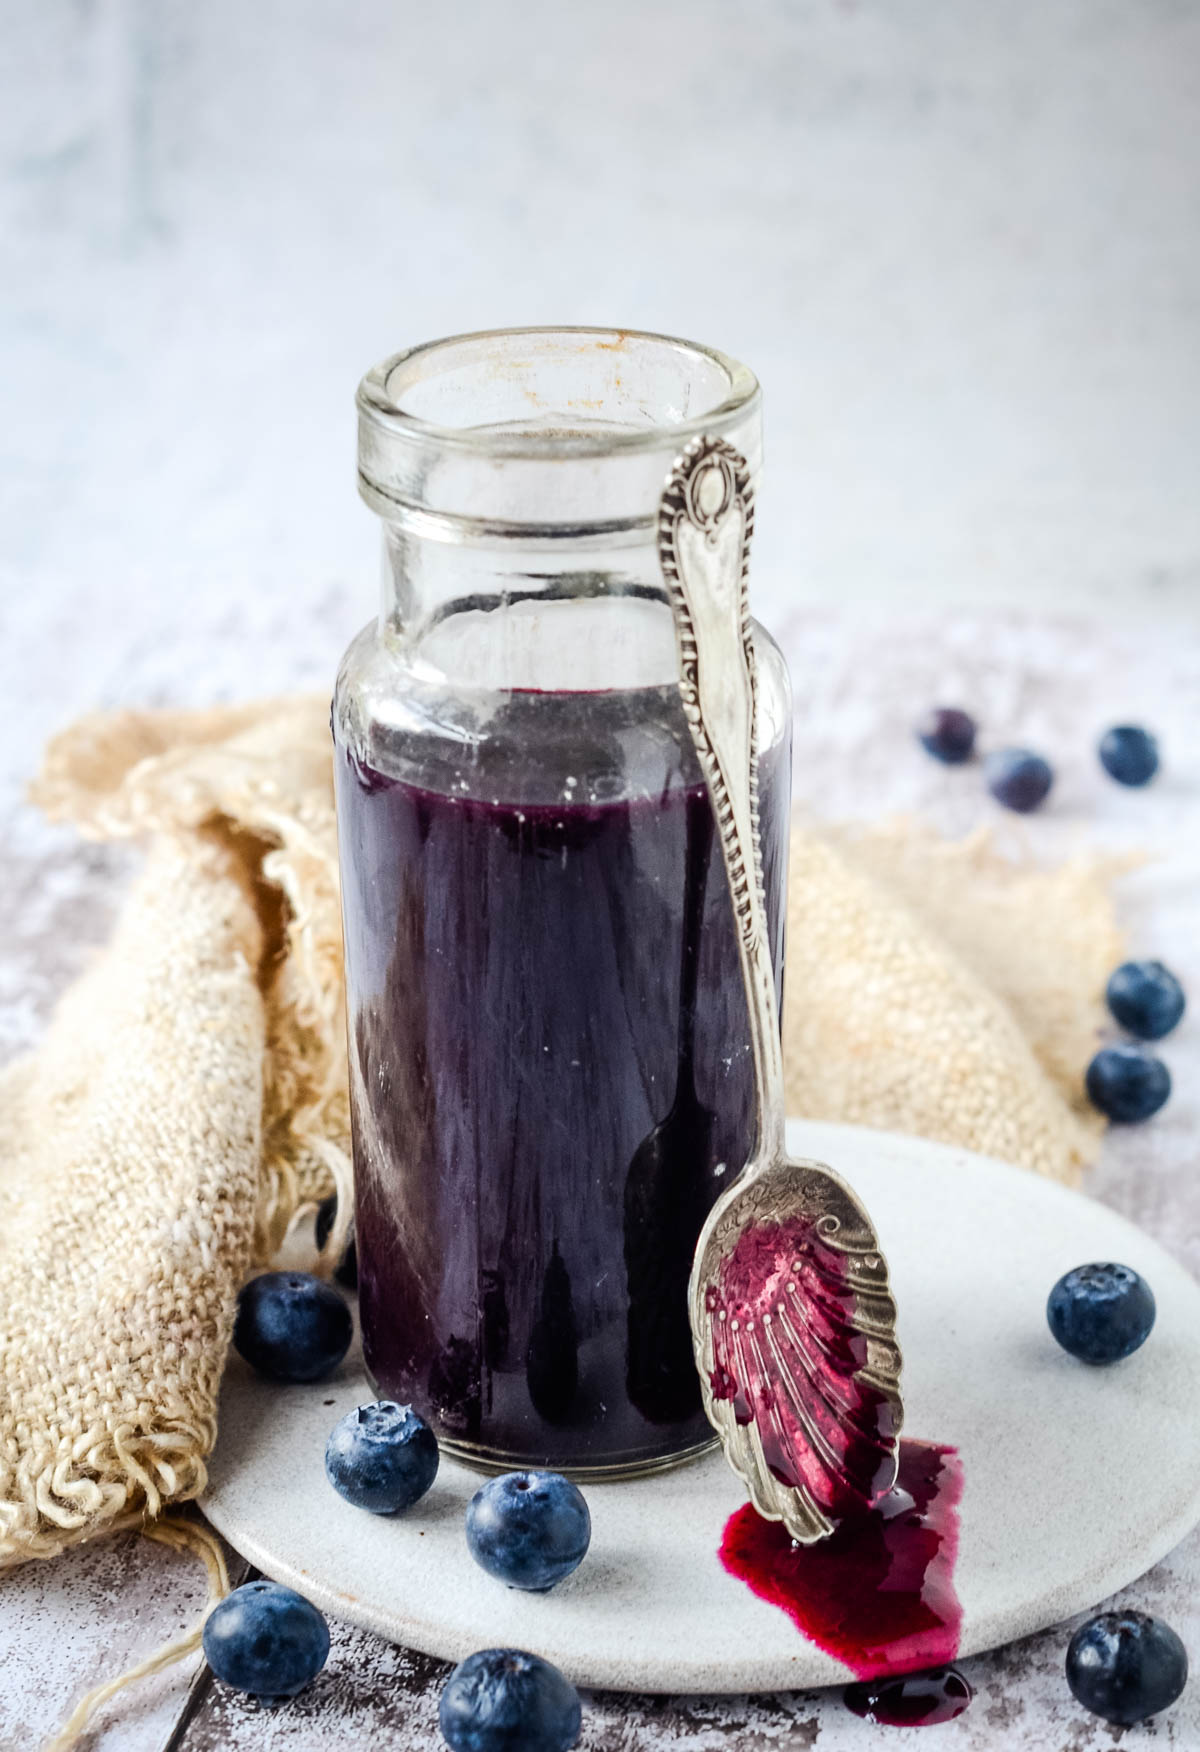 blueberry syrup in bottle with spoon at side